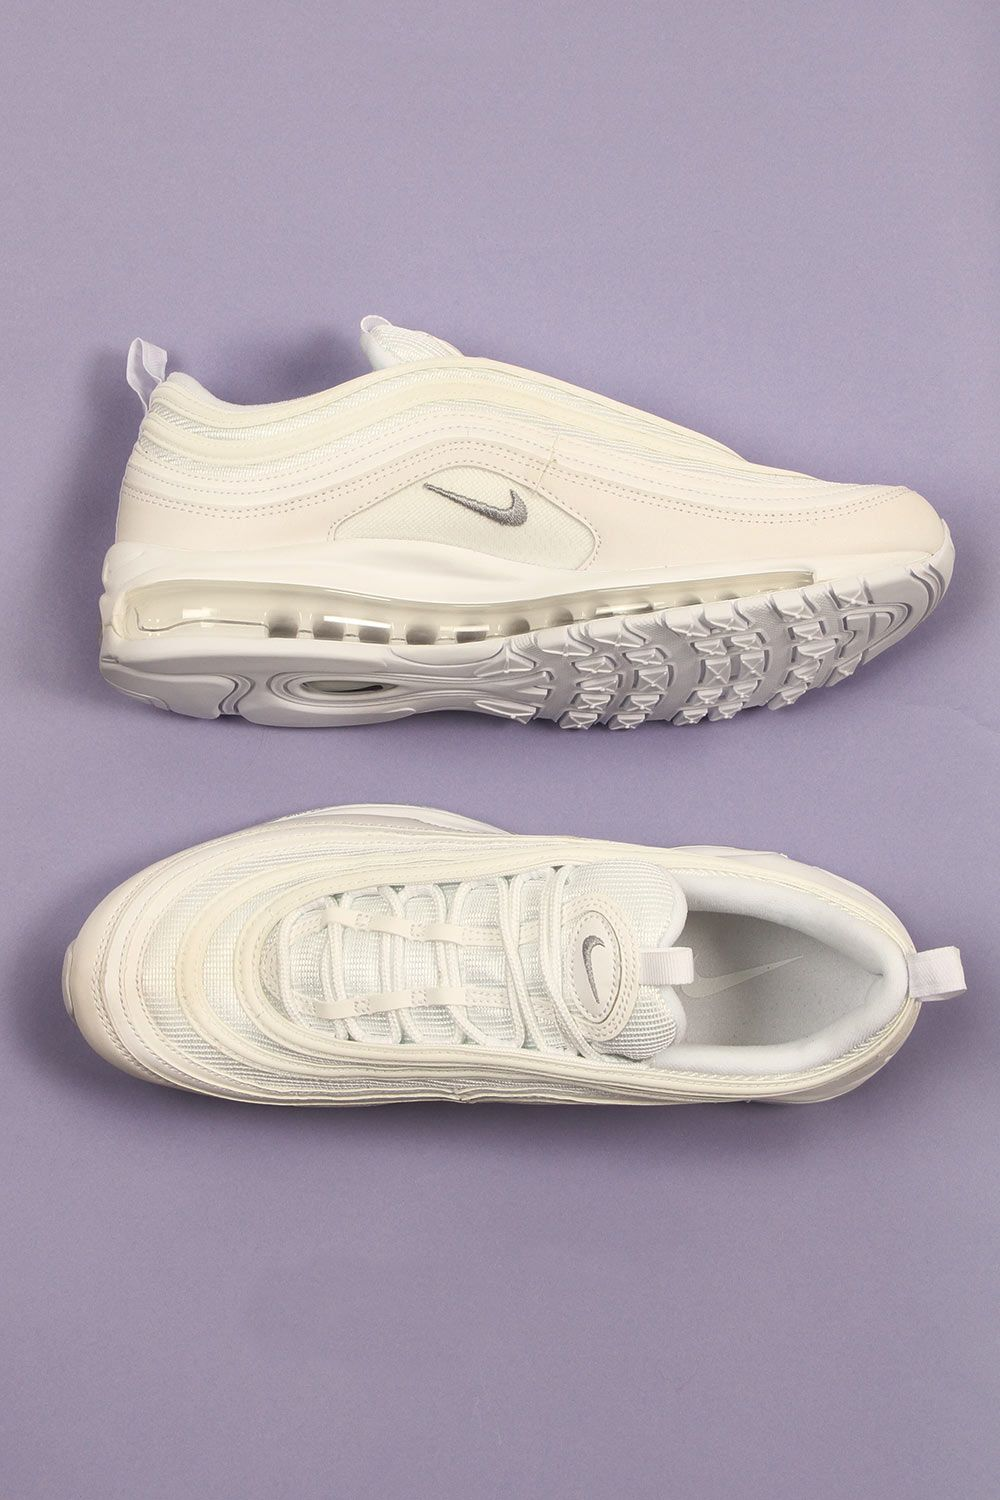 super popular 1a597 552a6 New Nike 97s Launching 060418 sneakers womens lilac